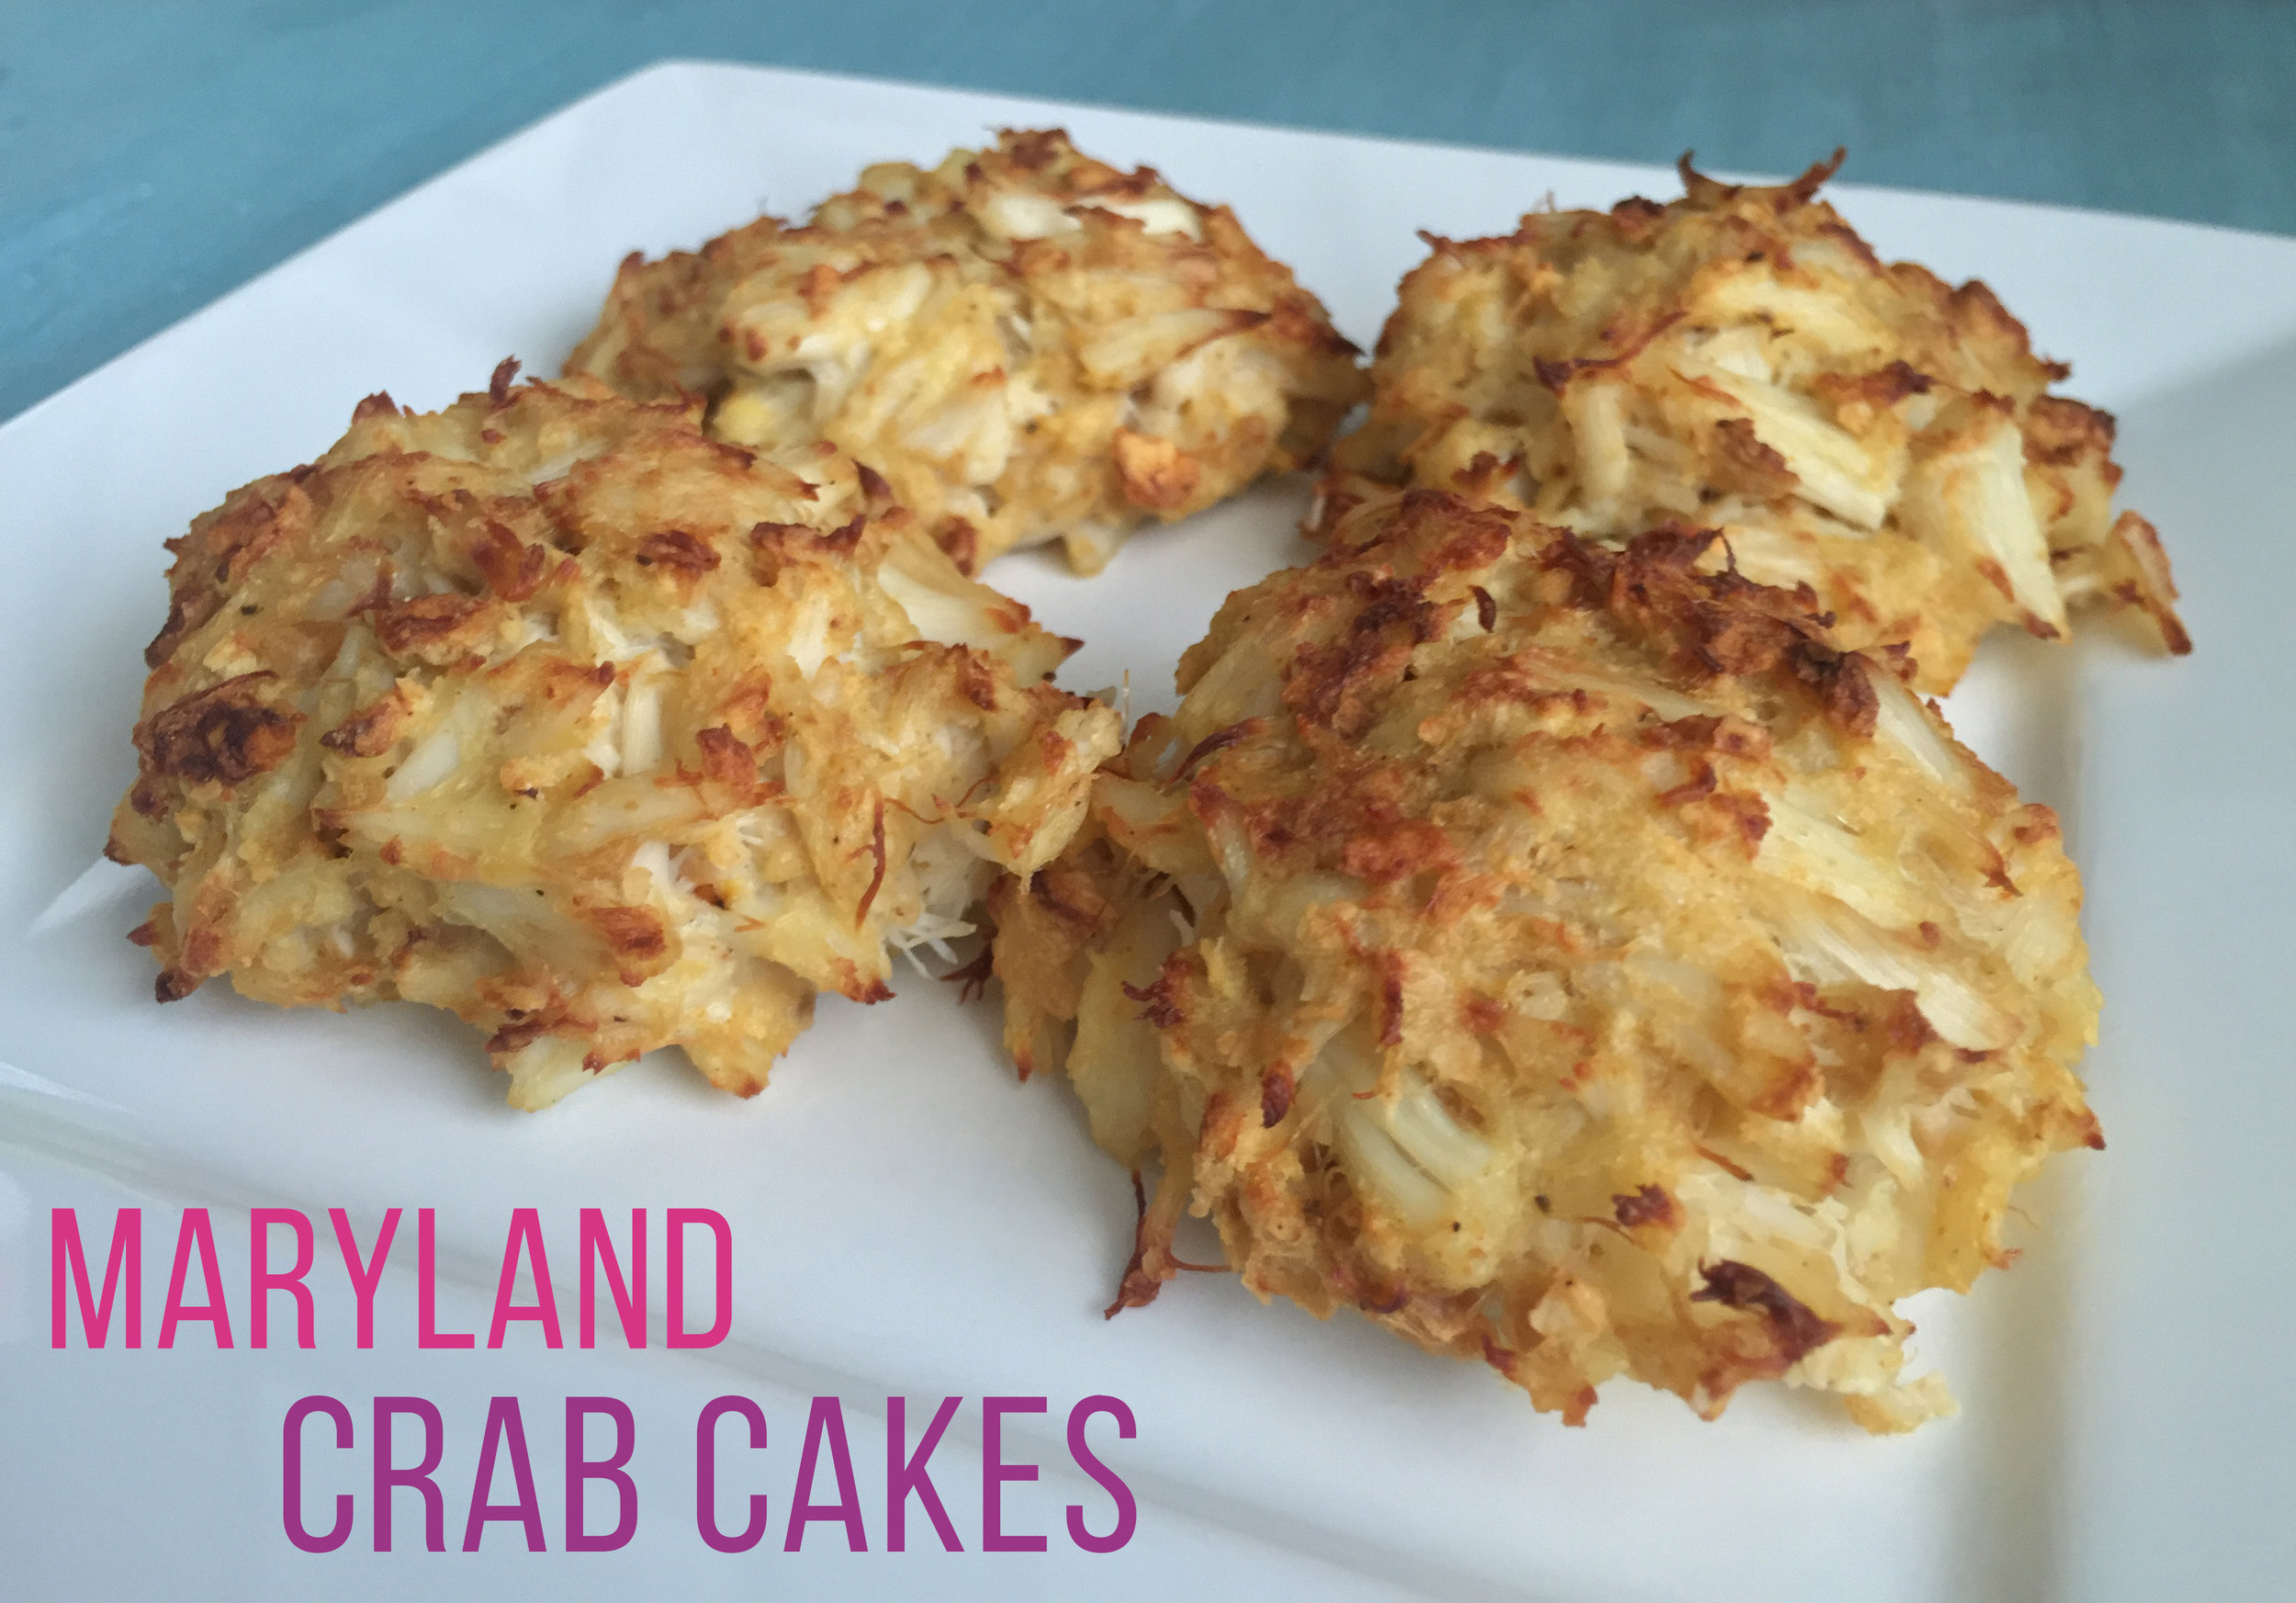 Maryland Crab Cake Recipe - The Haute Blogger